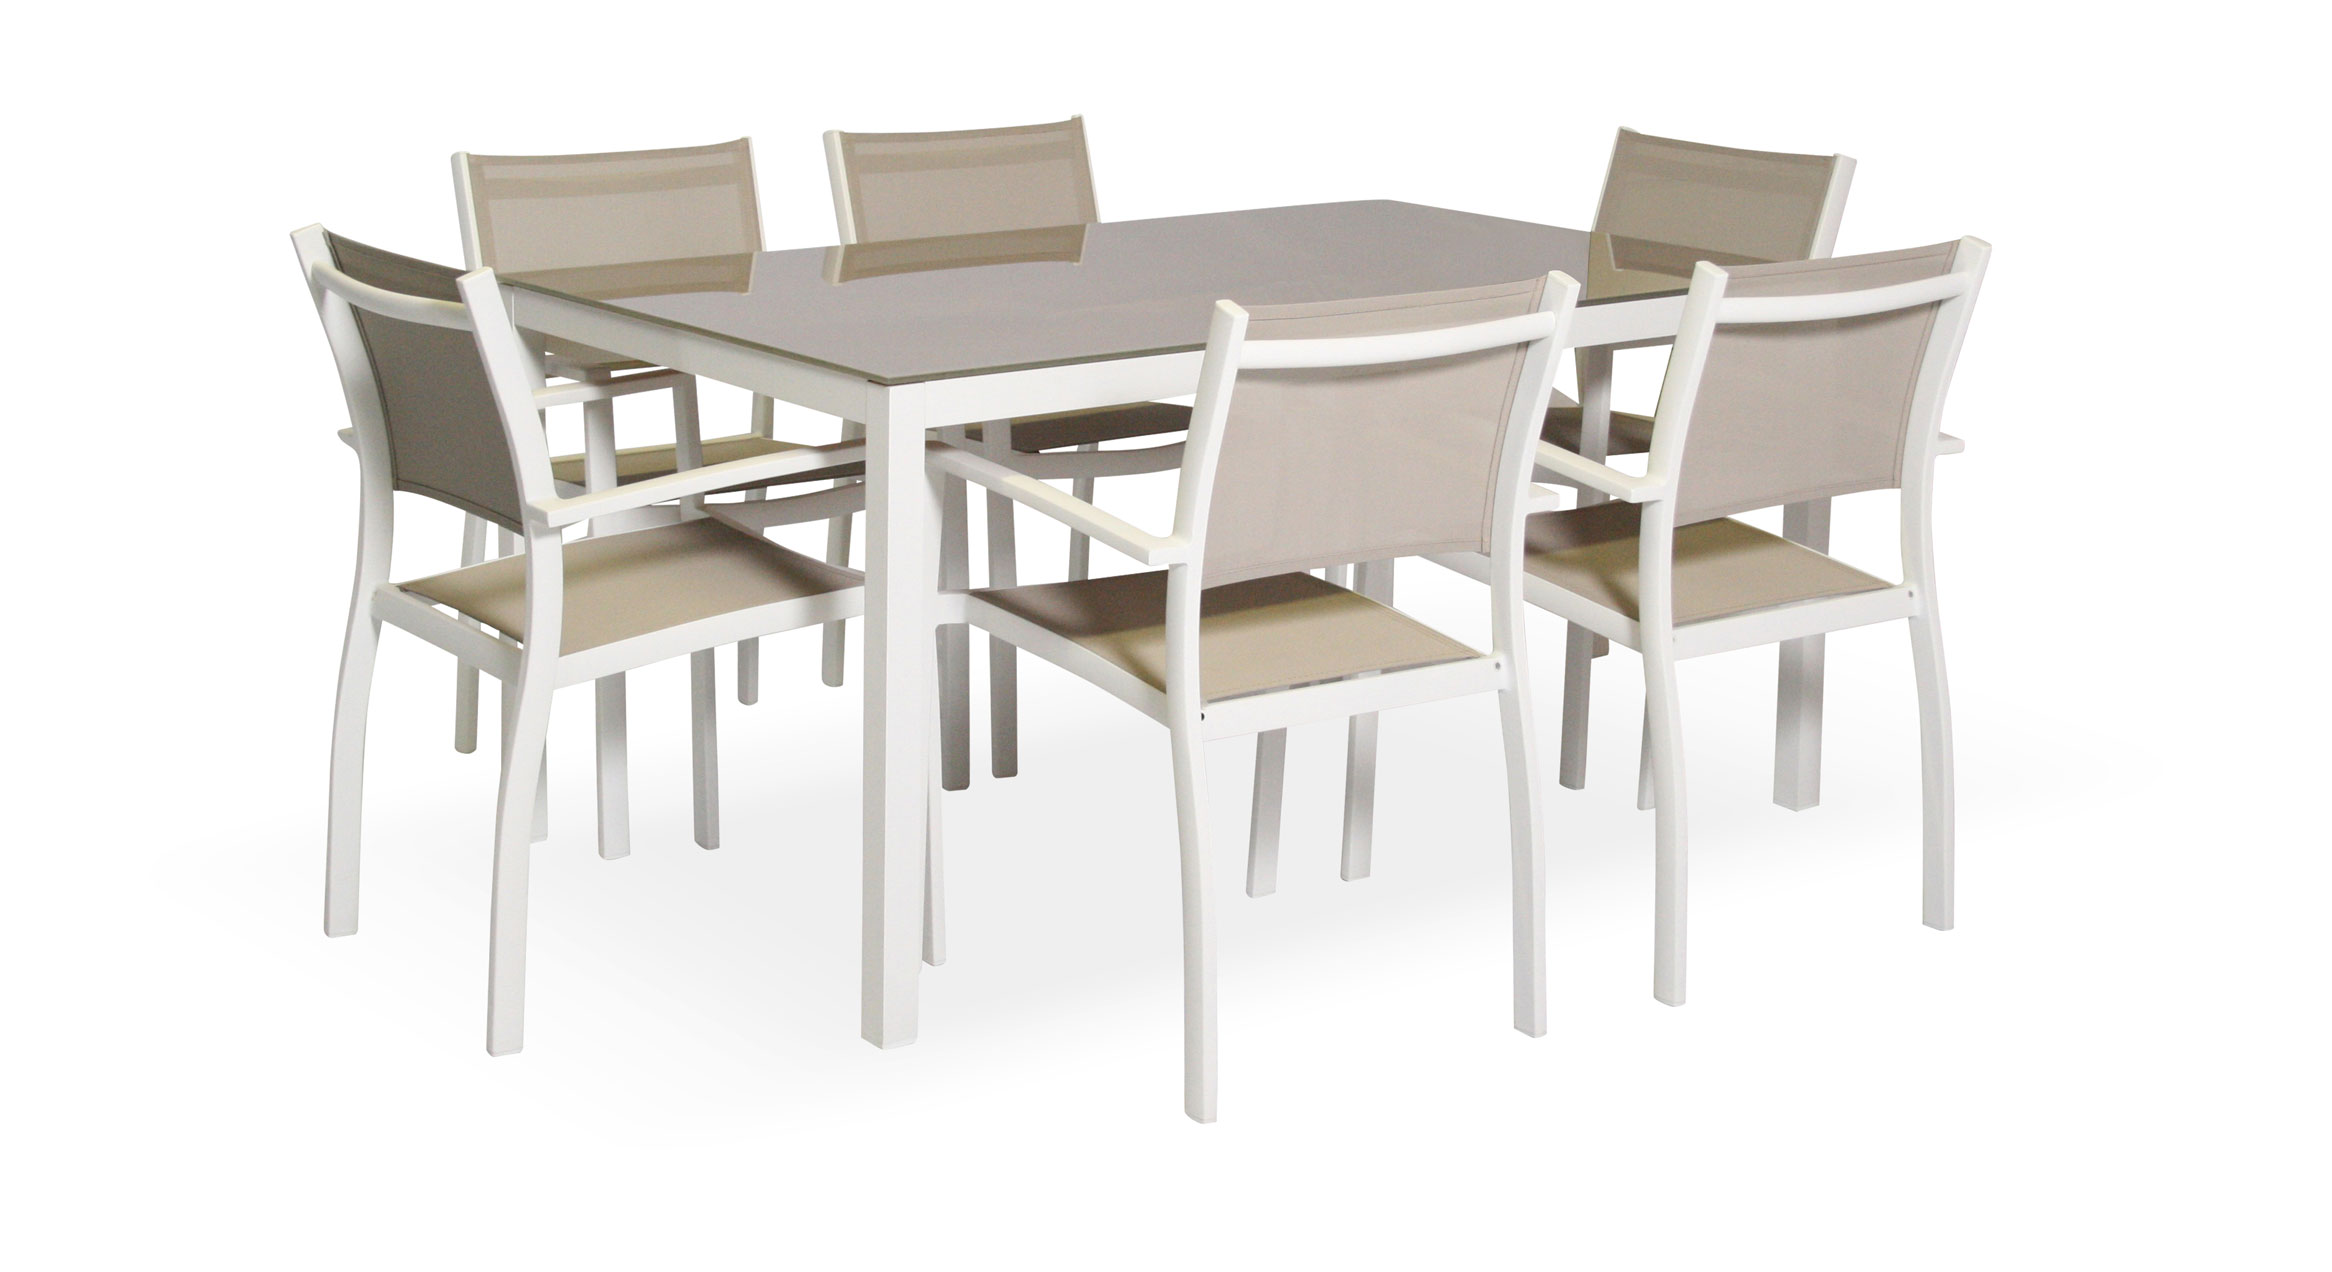 Call 6 seater Dining set